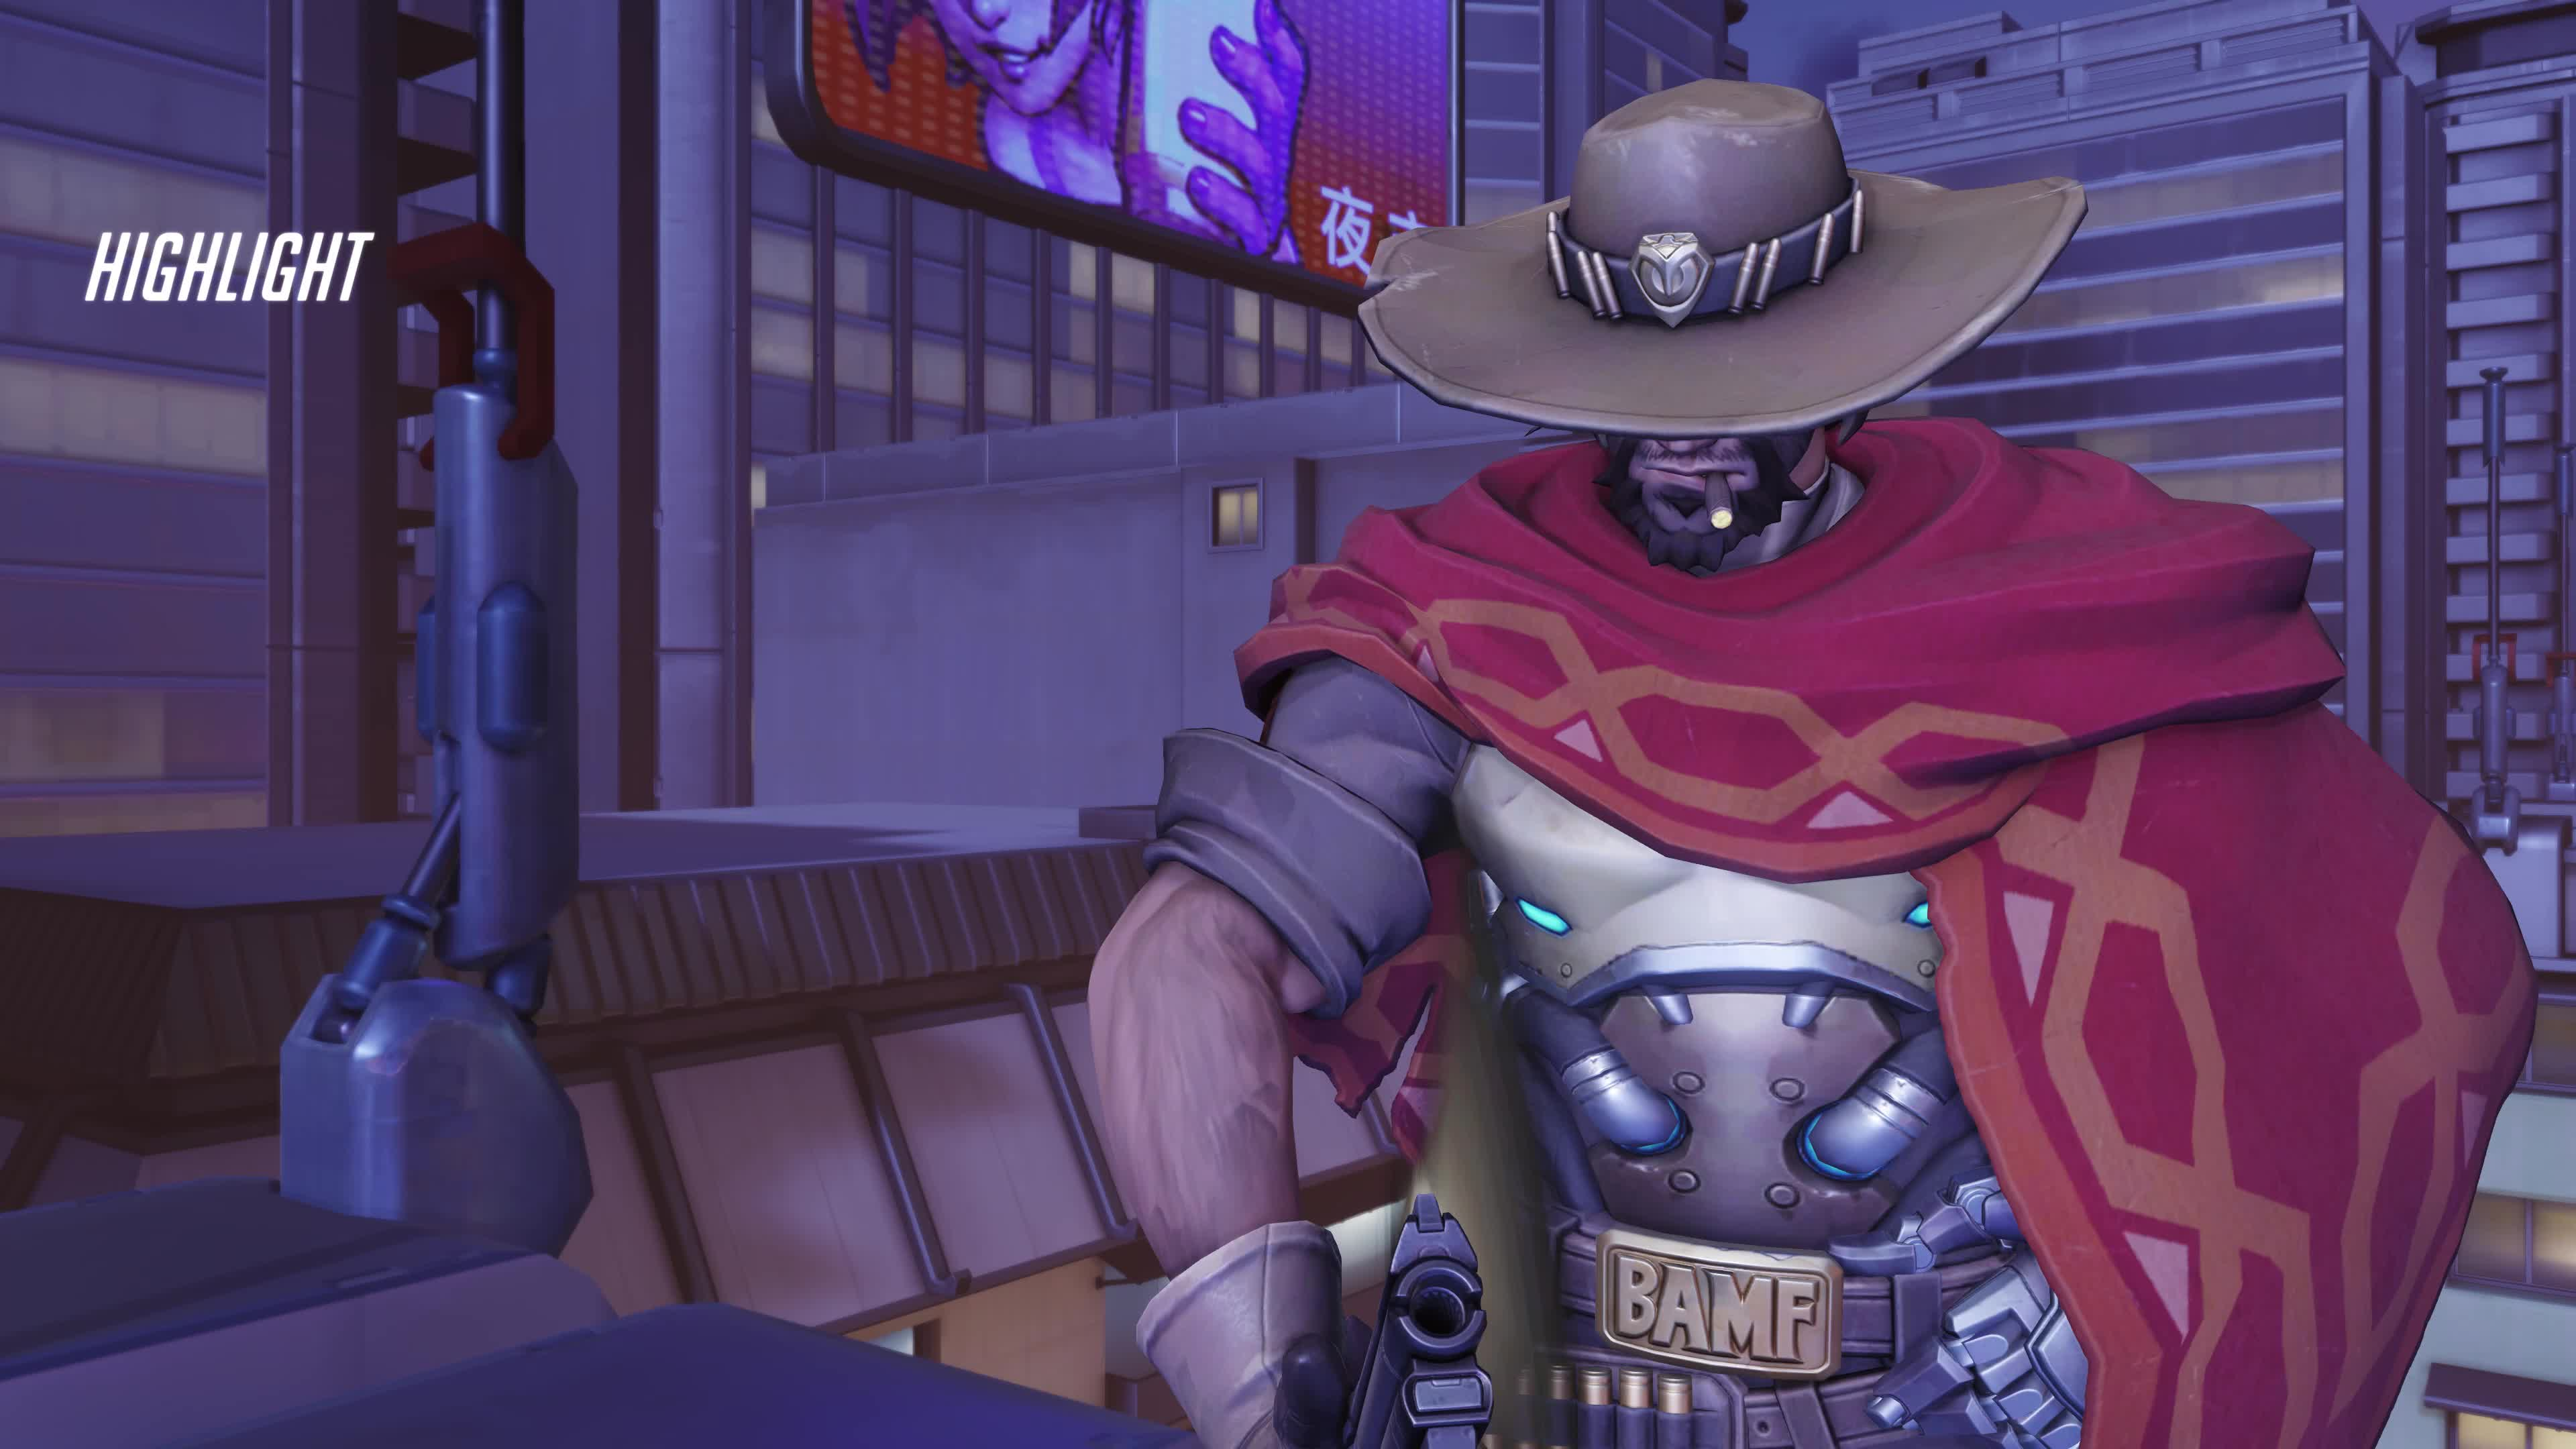 highlight, mccree, overwatch, Flick of the Wrist GIFs